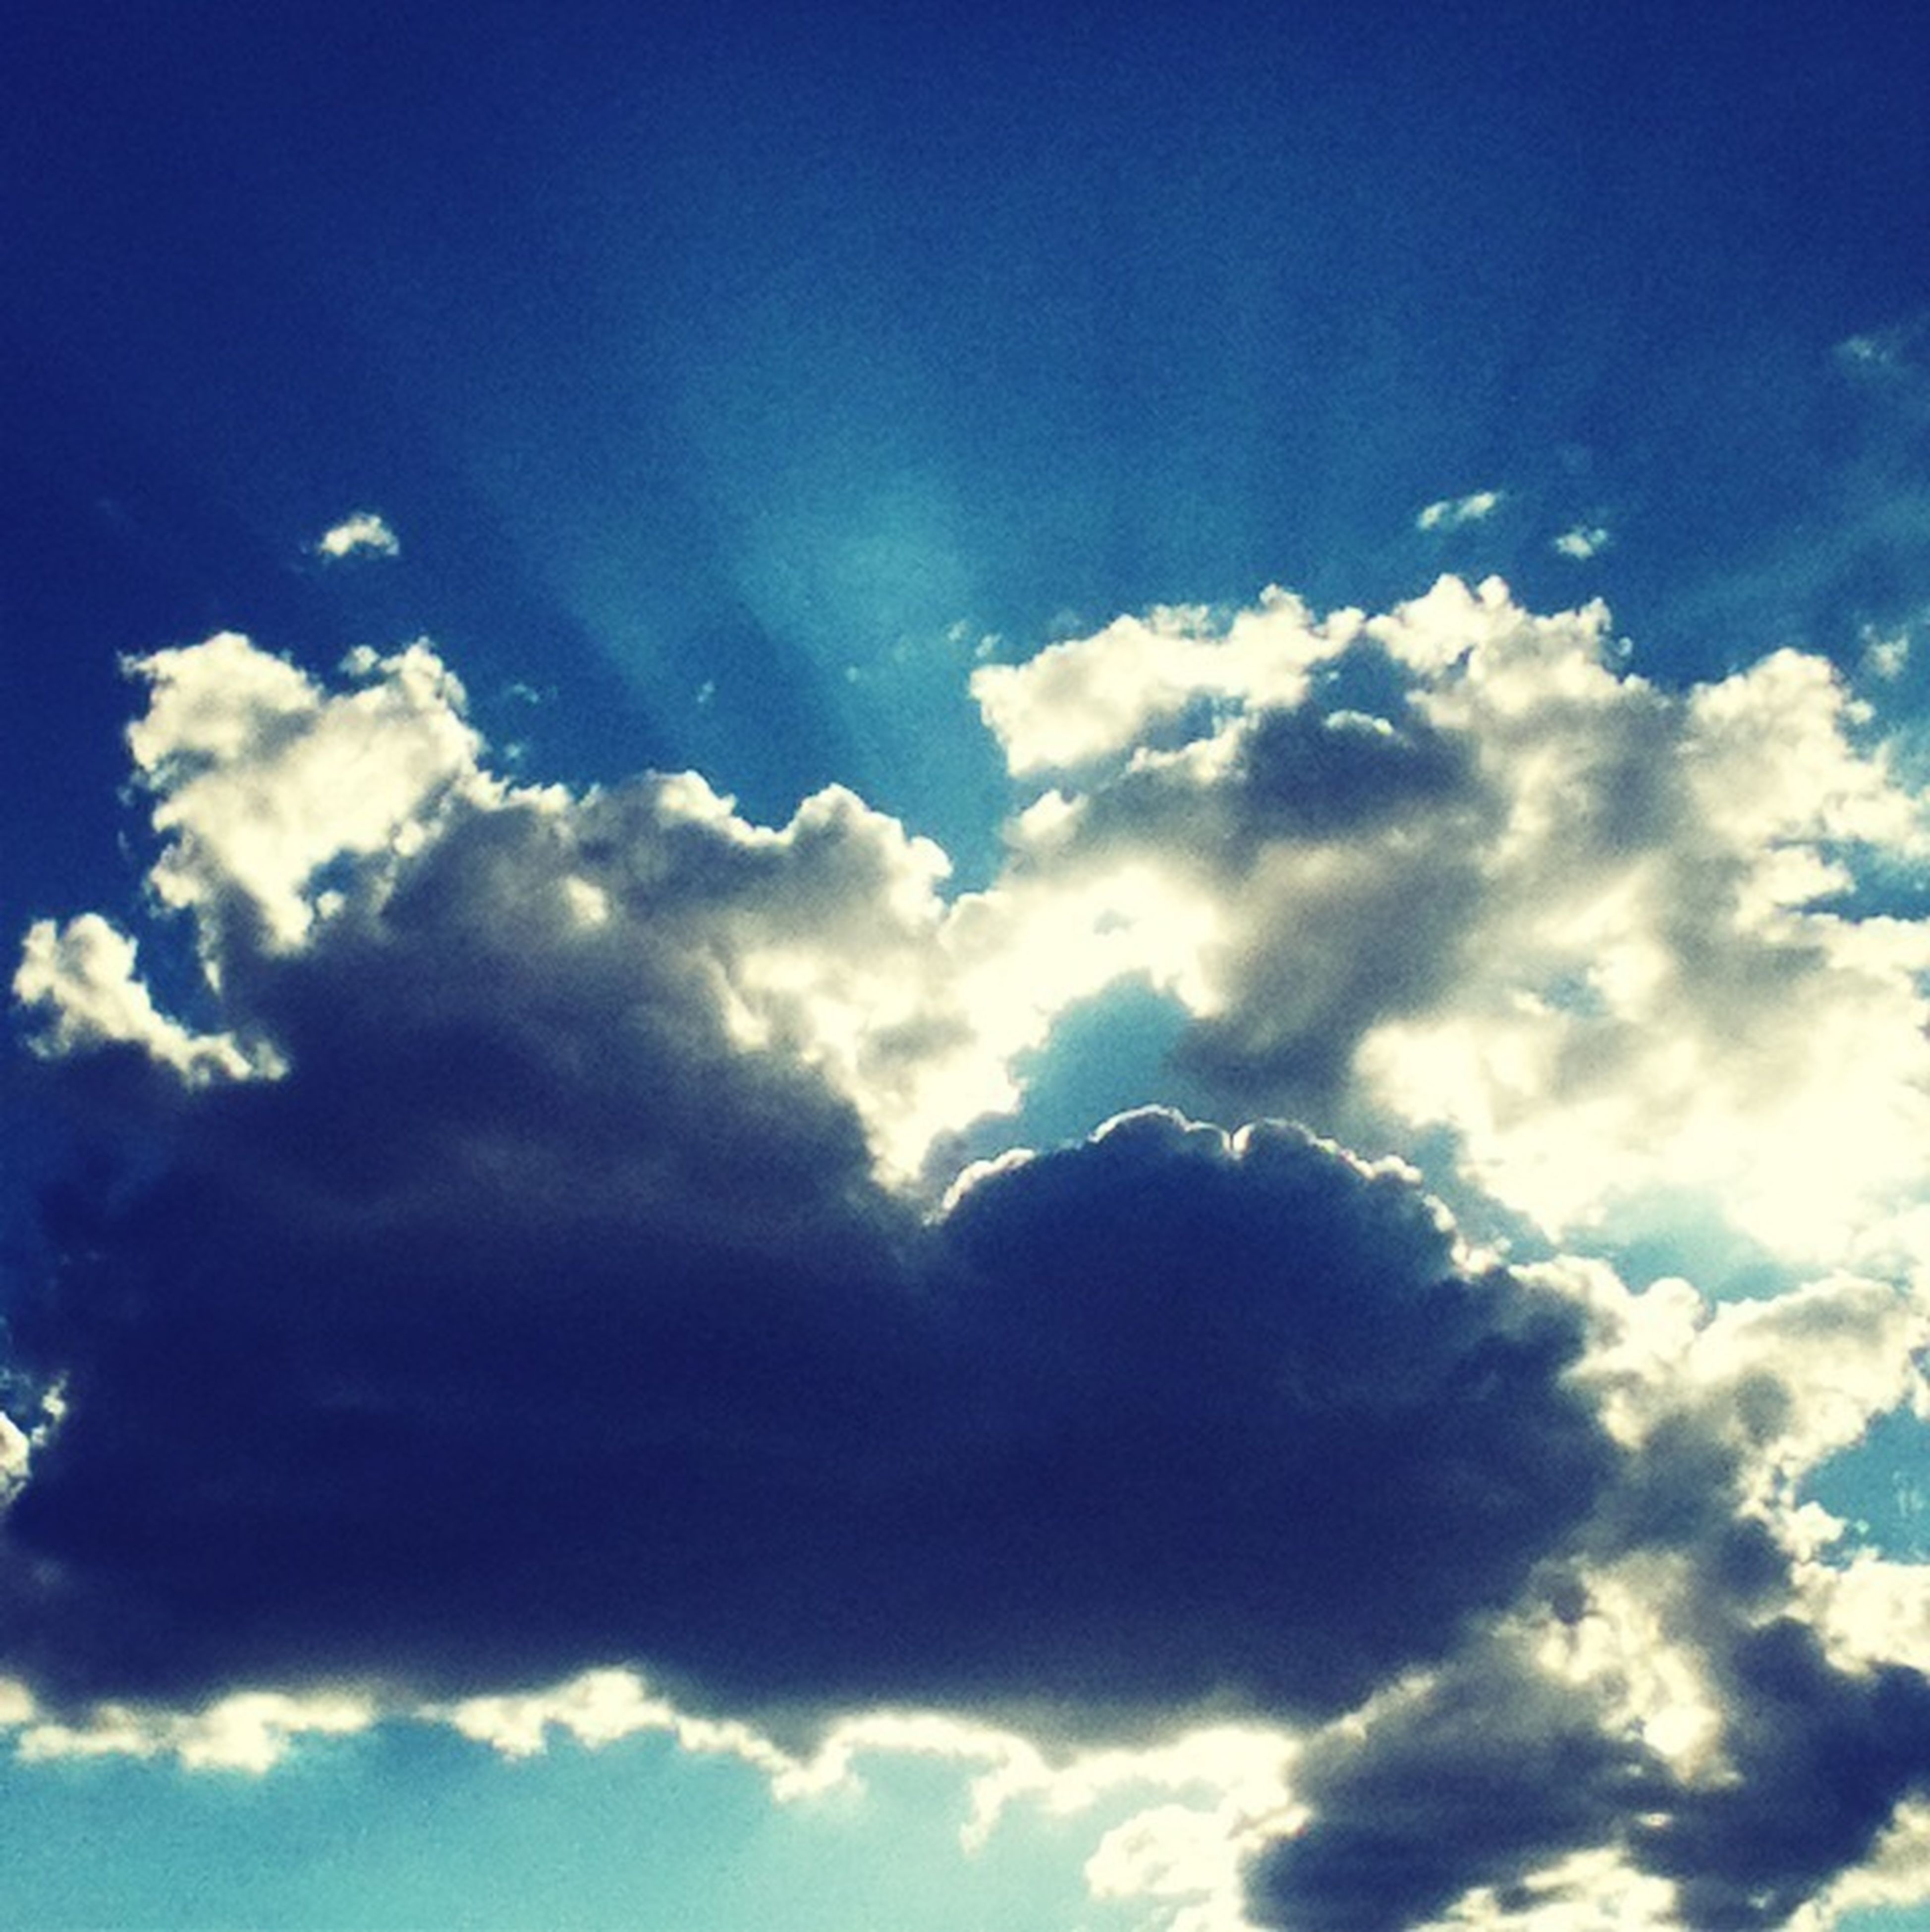 blue, low angle view, sky, sky only, beauty in nature, cloud - sky, scenics, tranquility, nature, cloudscape, tranquil scene, cloud, backgrounds, cloudy, idyllic, majestic, fluffy, white color, full frame, outdoors